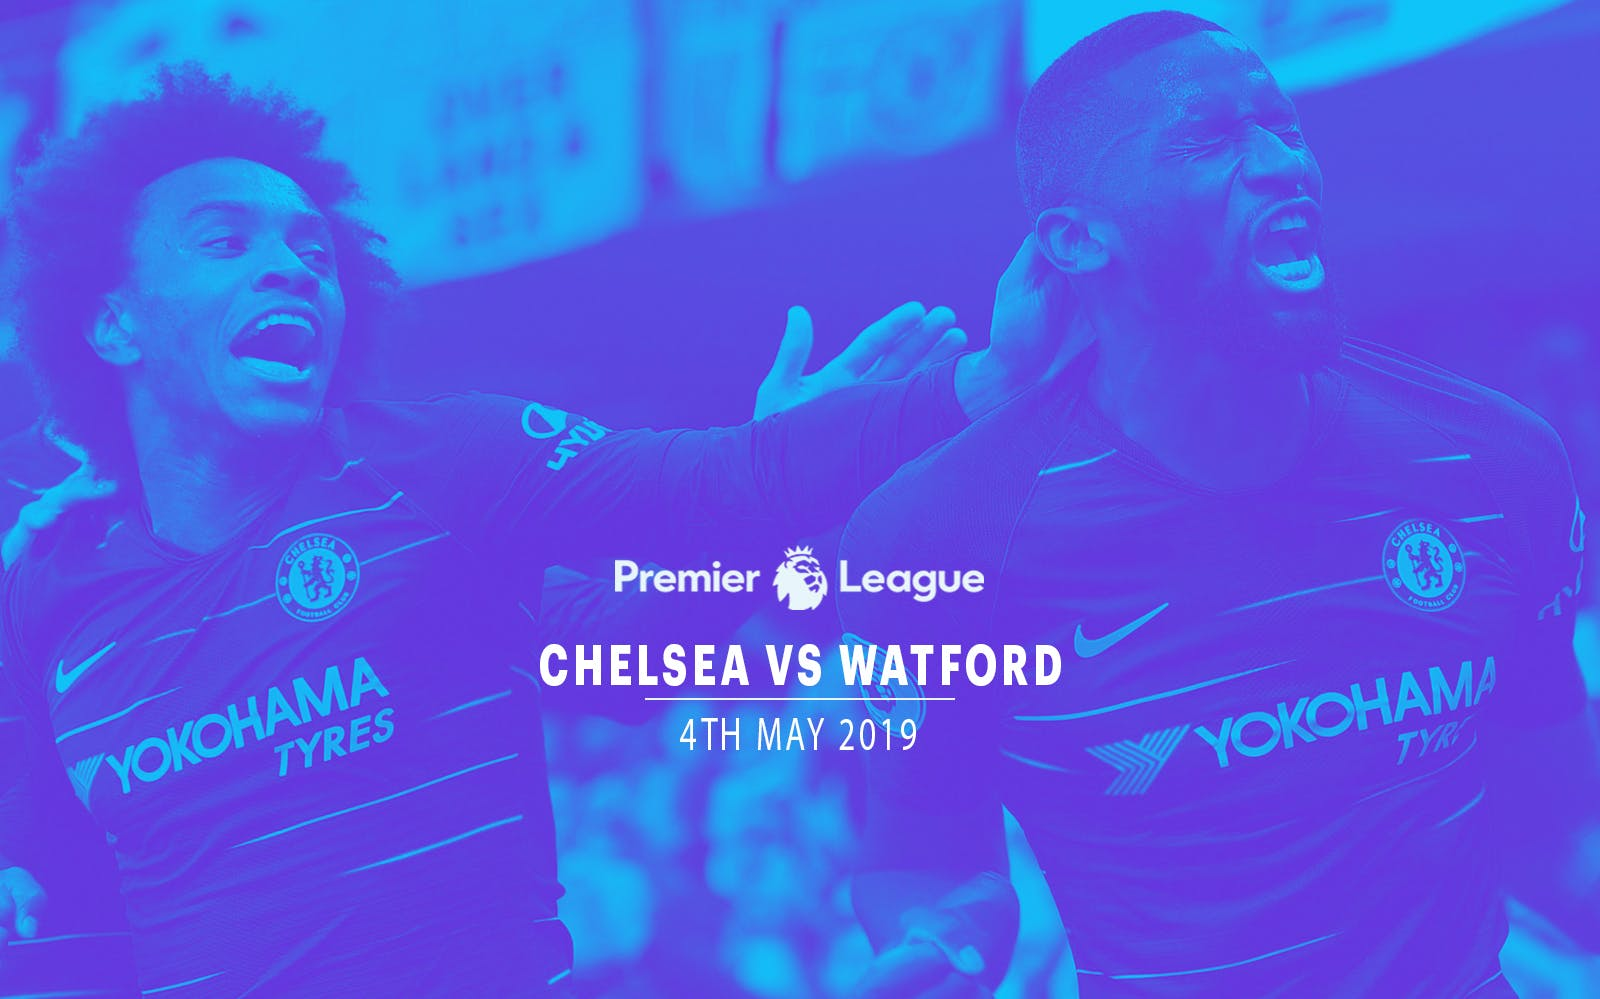 Chelsea vs Watford - 4th May'19